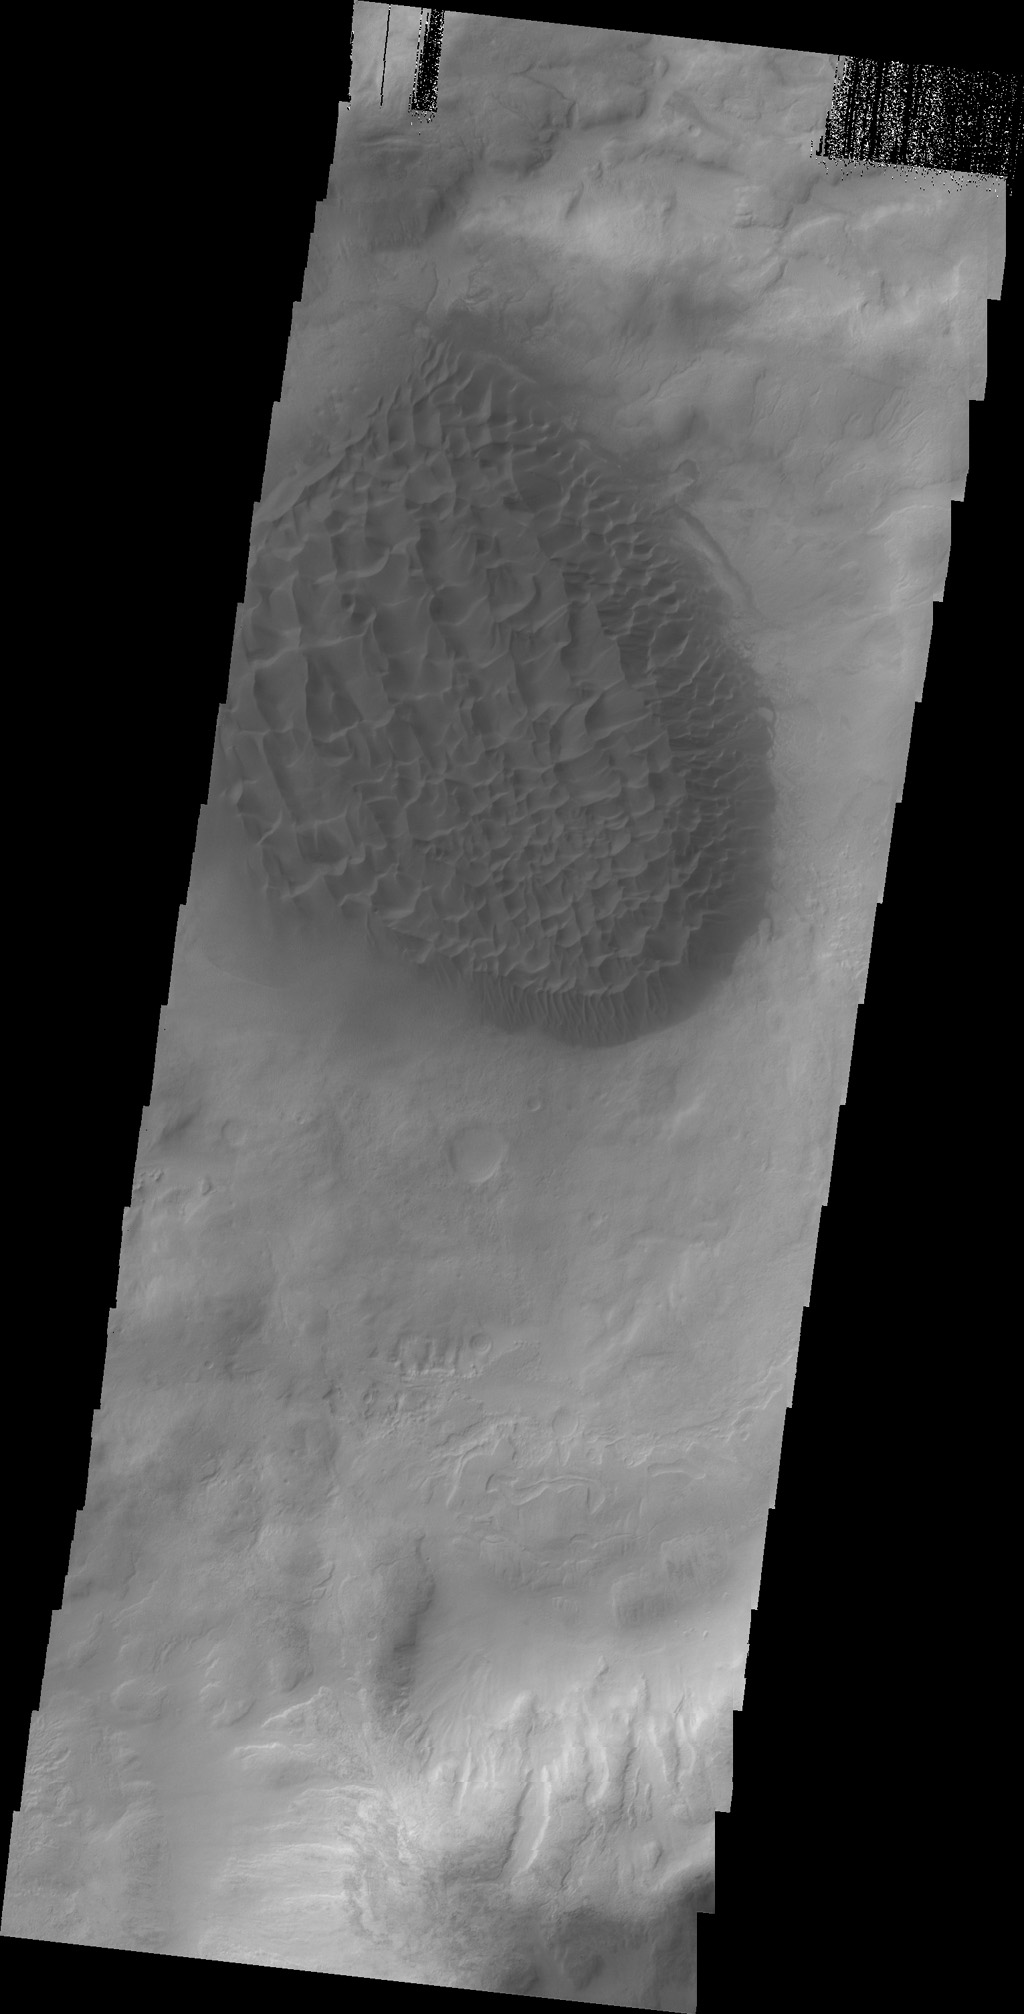 A large pile of sand with dune features on its surface is located on the floor of Matara Crater as seen by NASA's 2001 Mars Odyssey spacecraft.